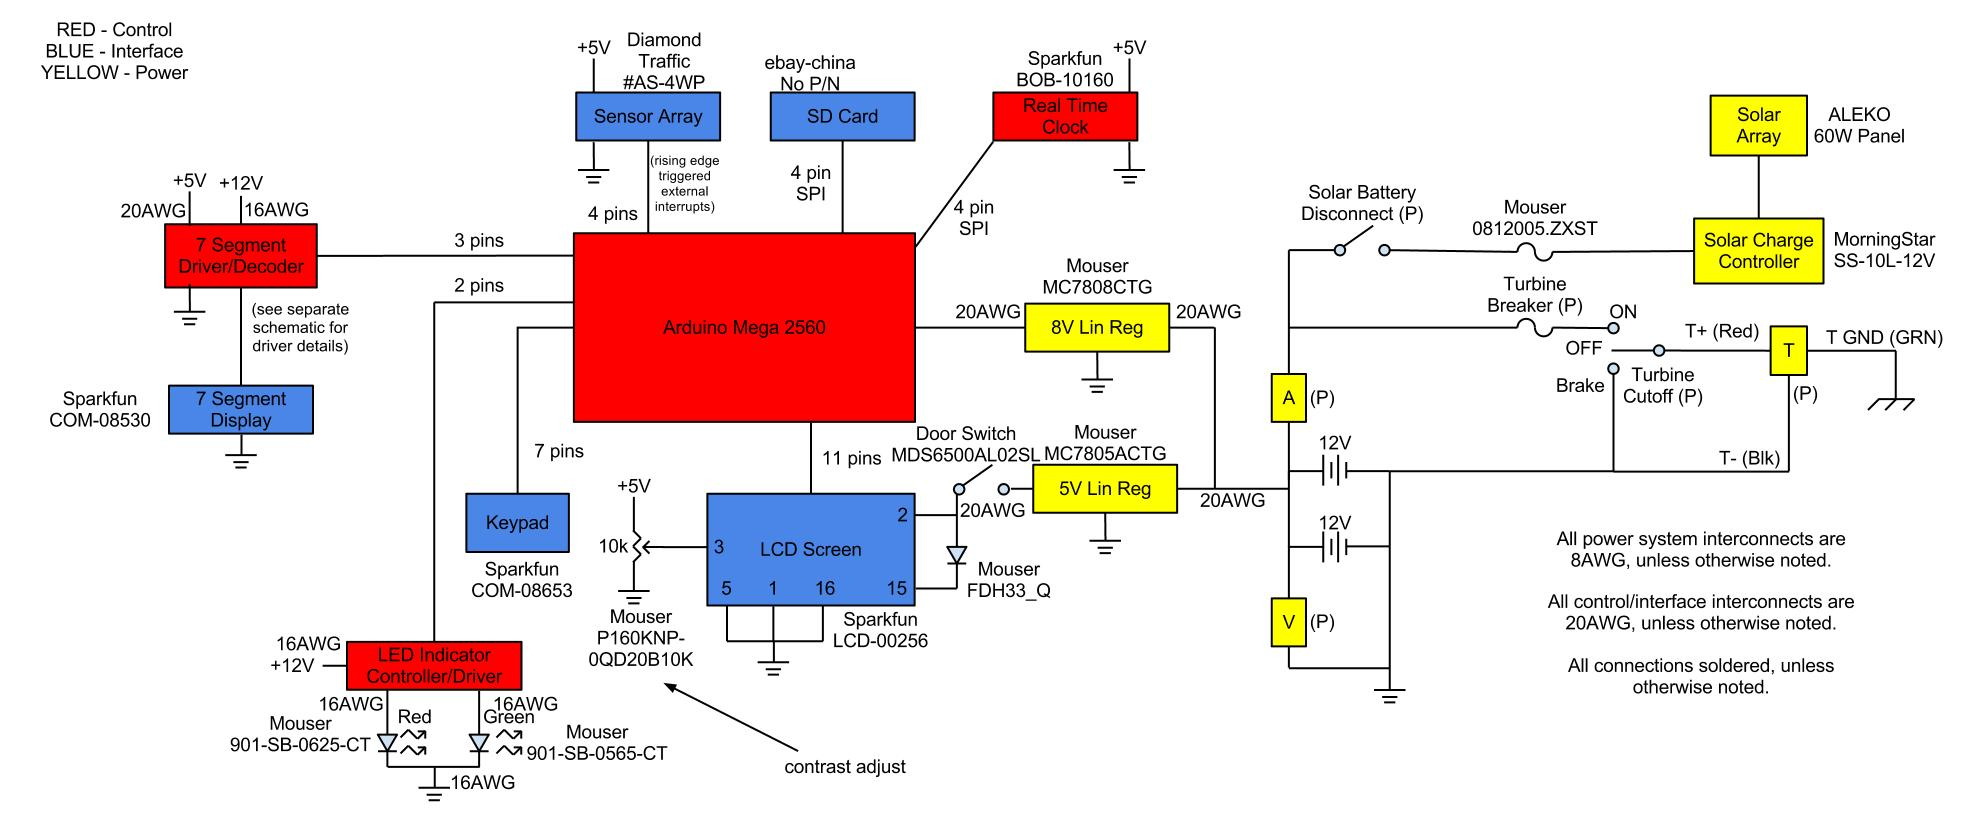 Edge 7 Segment Clock Circuit Diagram Overview Of Entire Electrical System